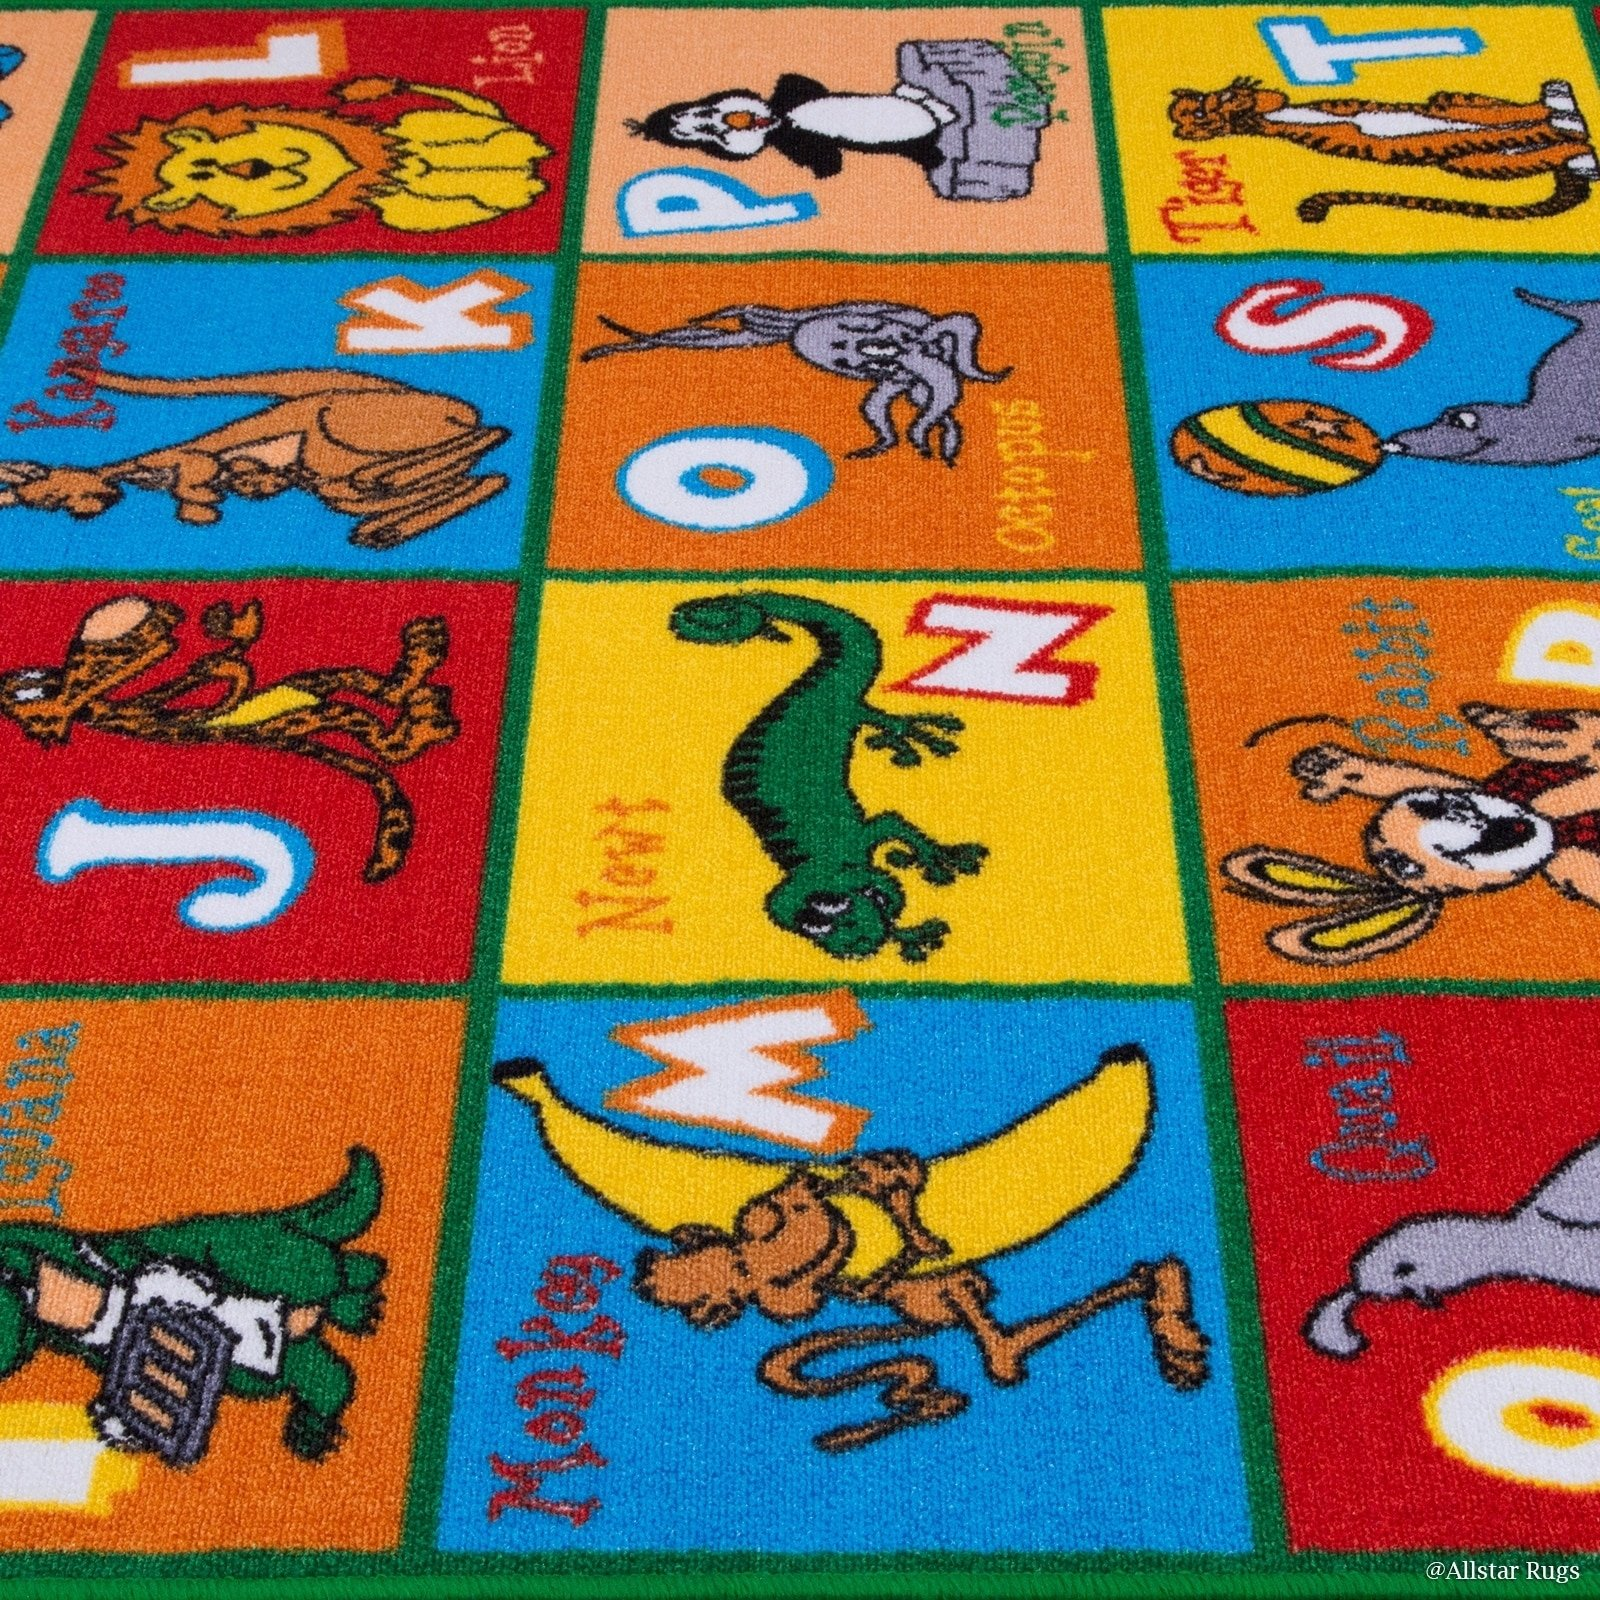 JA 4'11'' x6'11 ft Multi Colored Red Blue Yellow Orange Green White Abstract Patterned Kids Area Rug, Indoor Artistic Alphabet Letters Girl Boy Nursery Room Mat Rectangle Carpet, Animal Nylon Flooring by JA (Image #4)